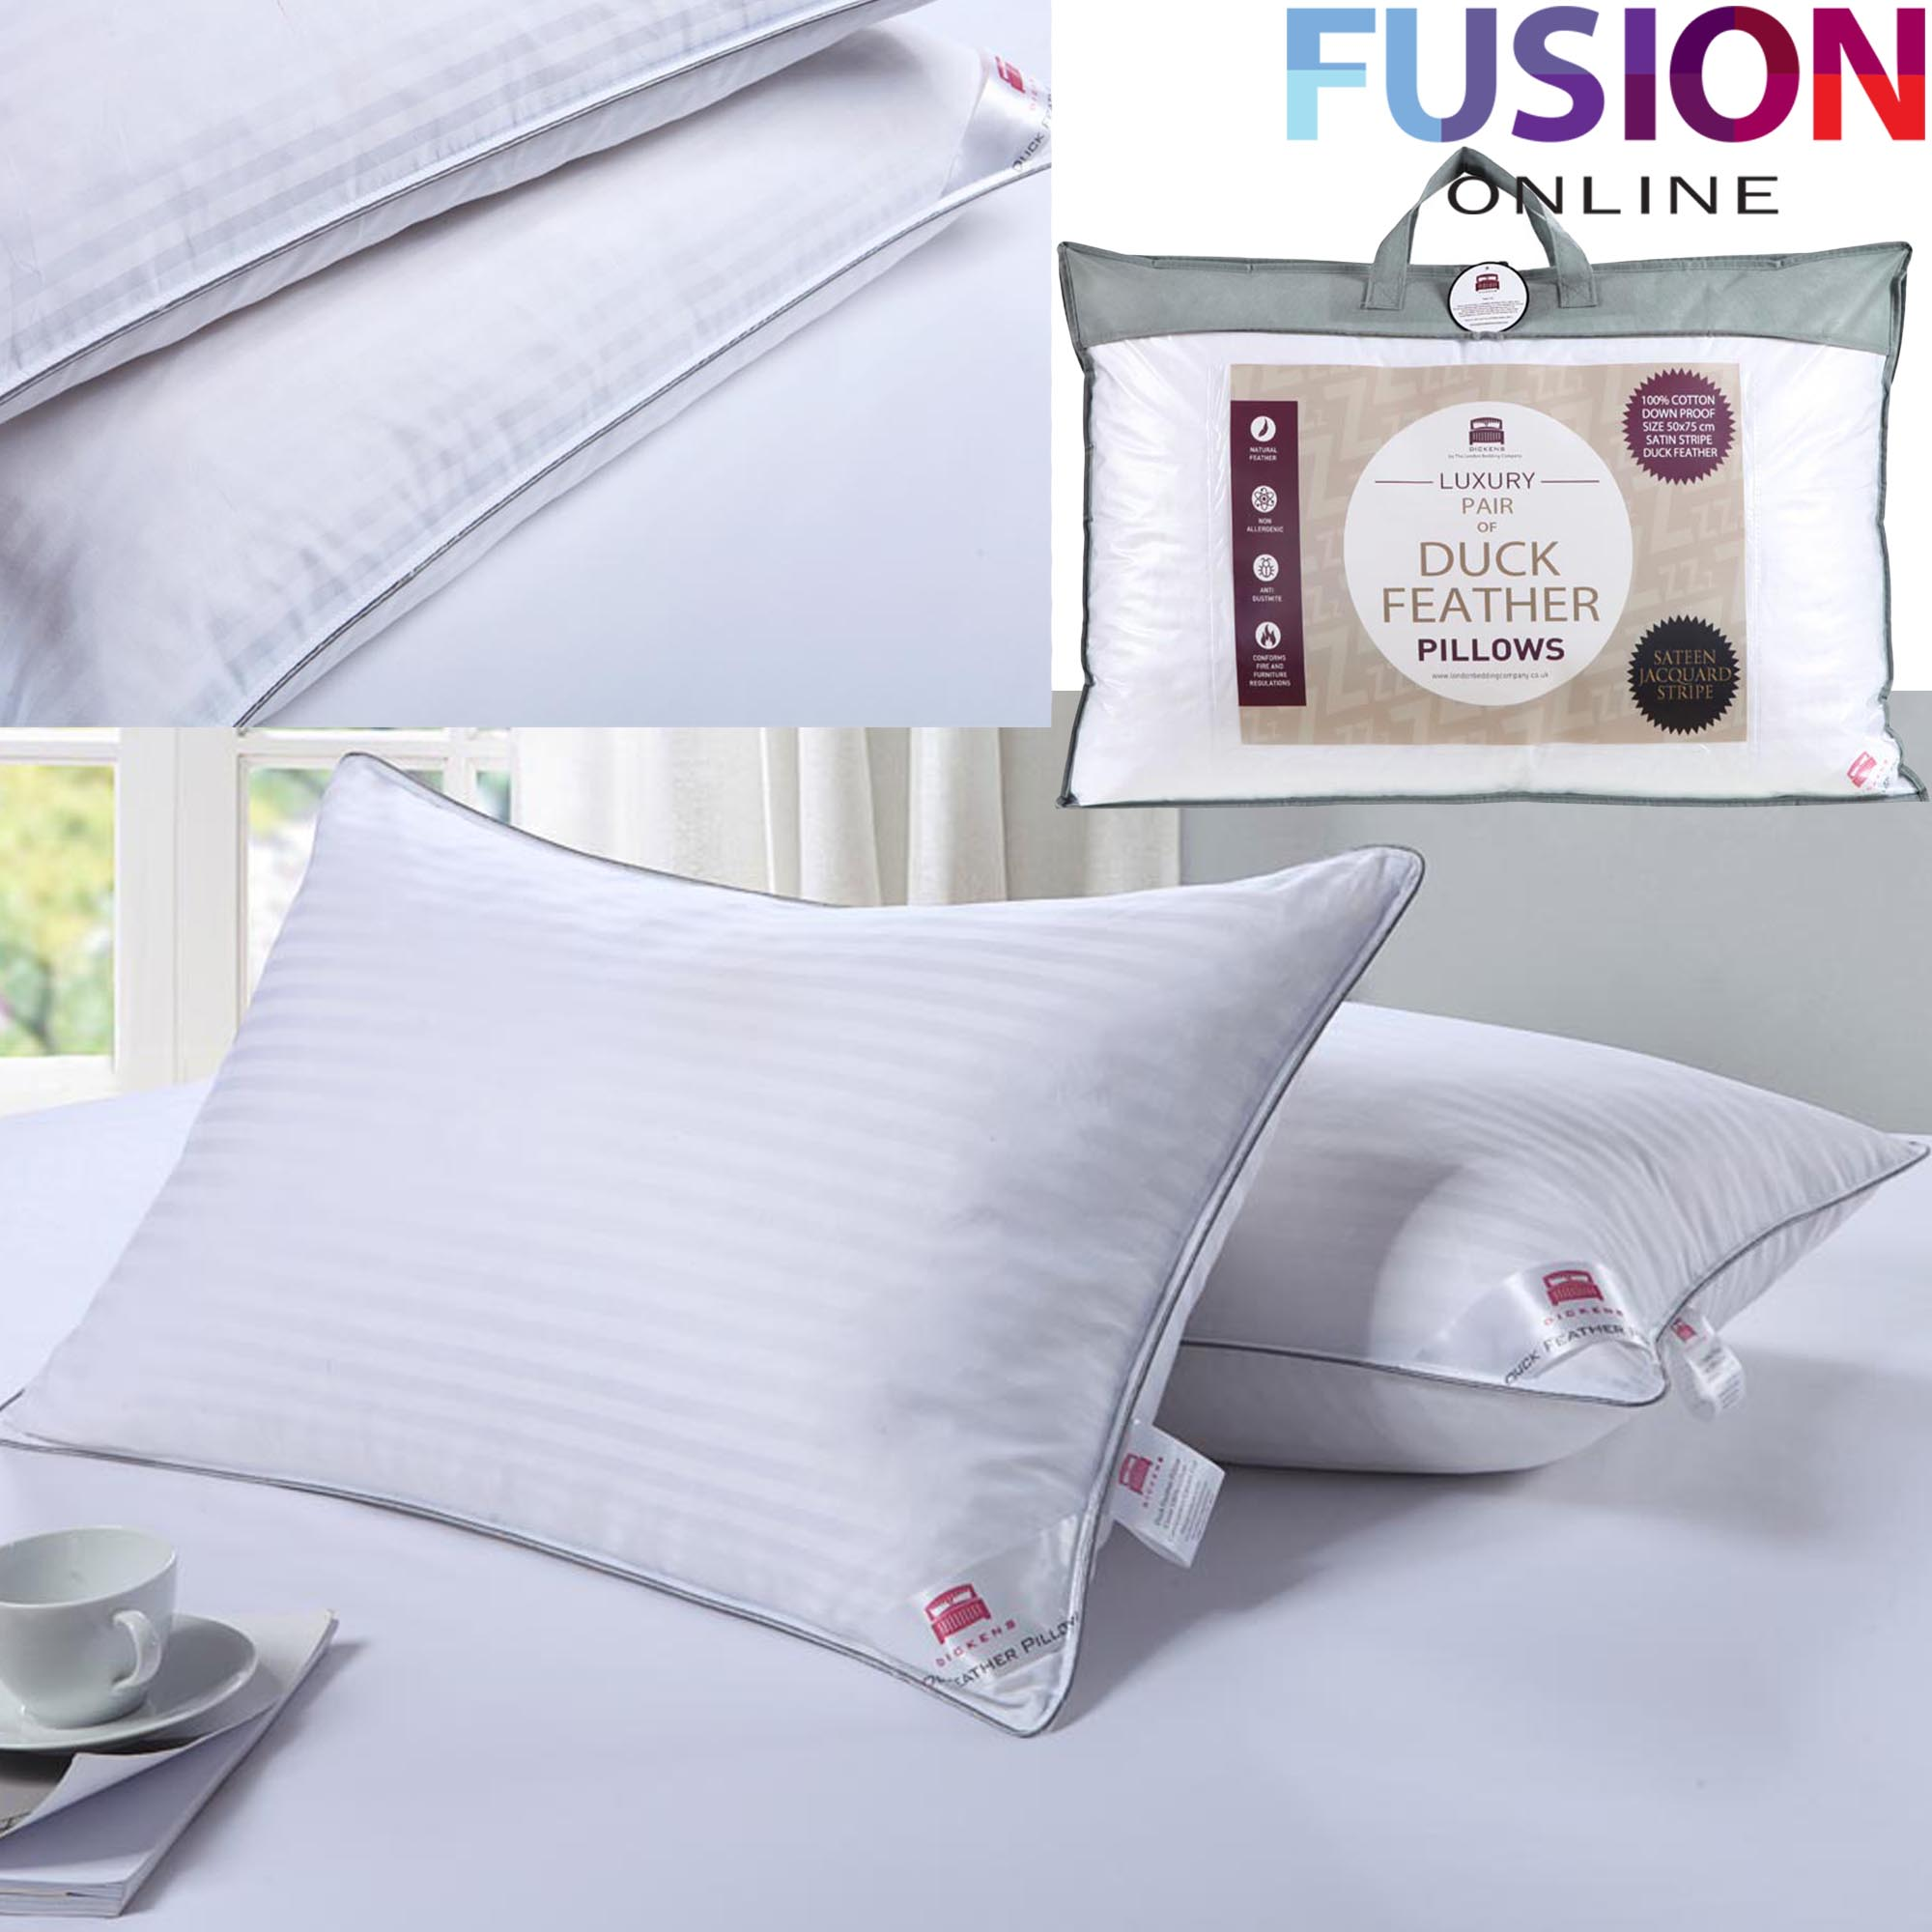 feather fluffing x of your pillows pillow to allergic you att be photo can